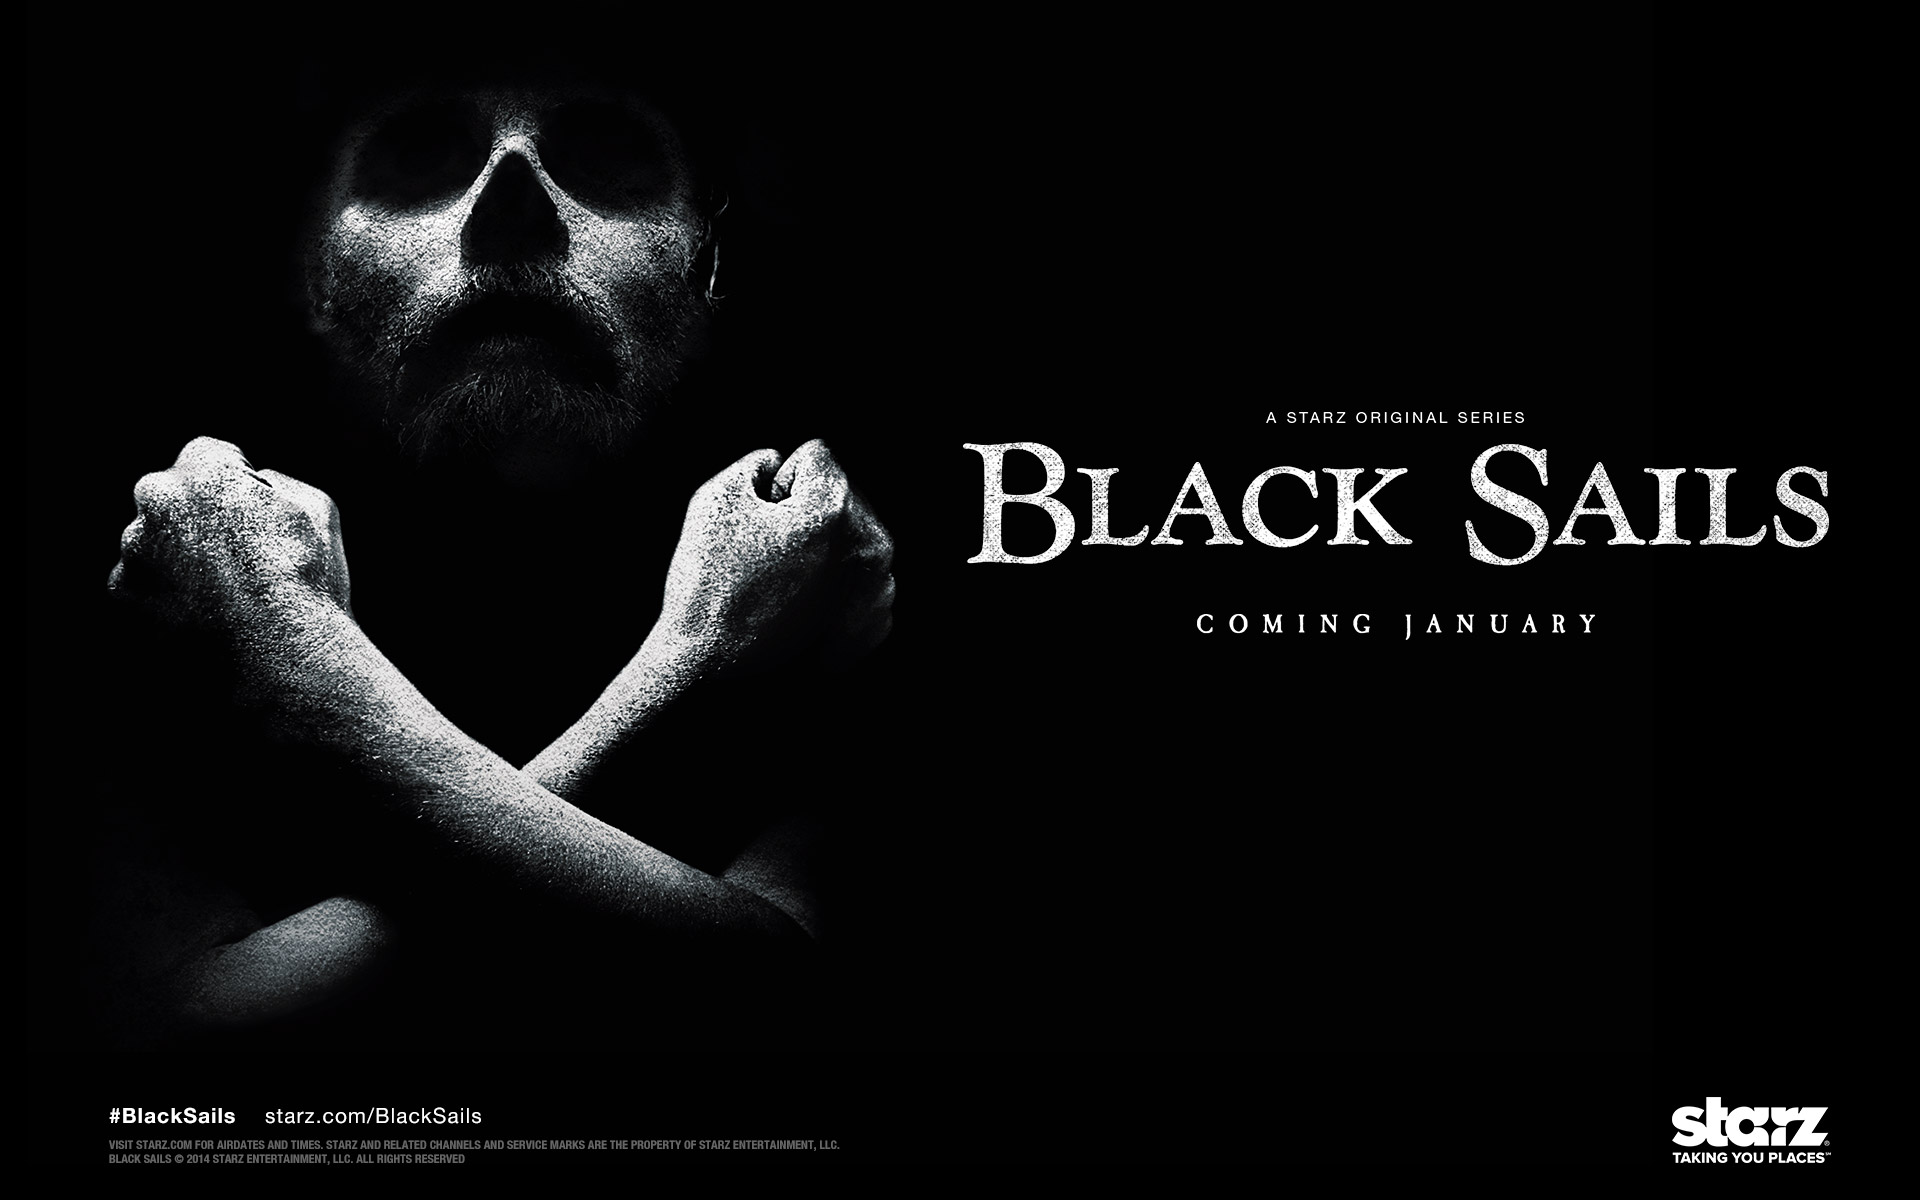 File Name 980933 21 Best HD Black Sails Wallpapers feelgrPH 1920x1200